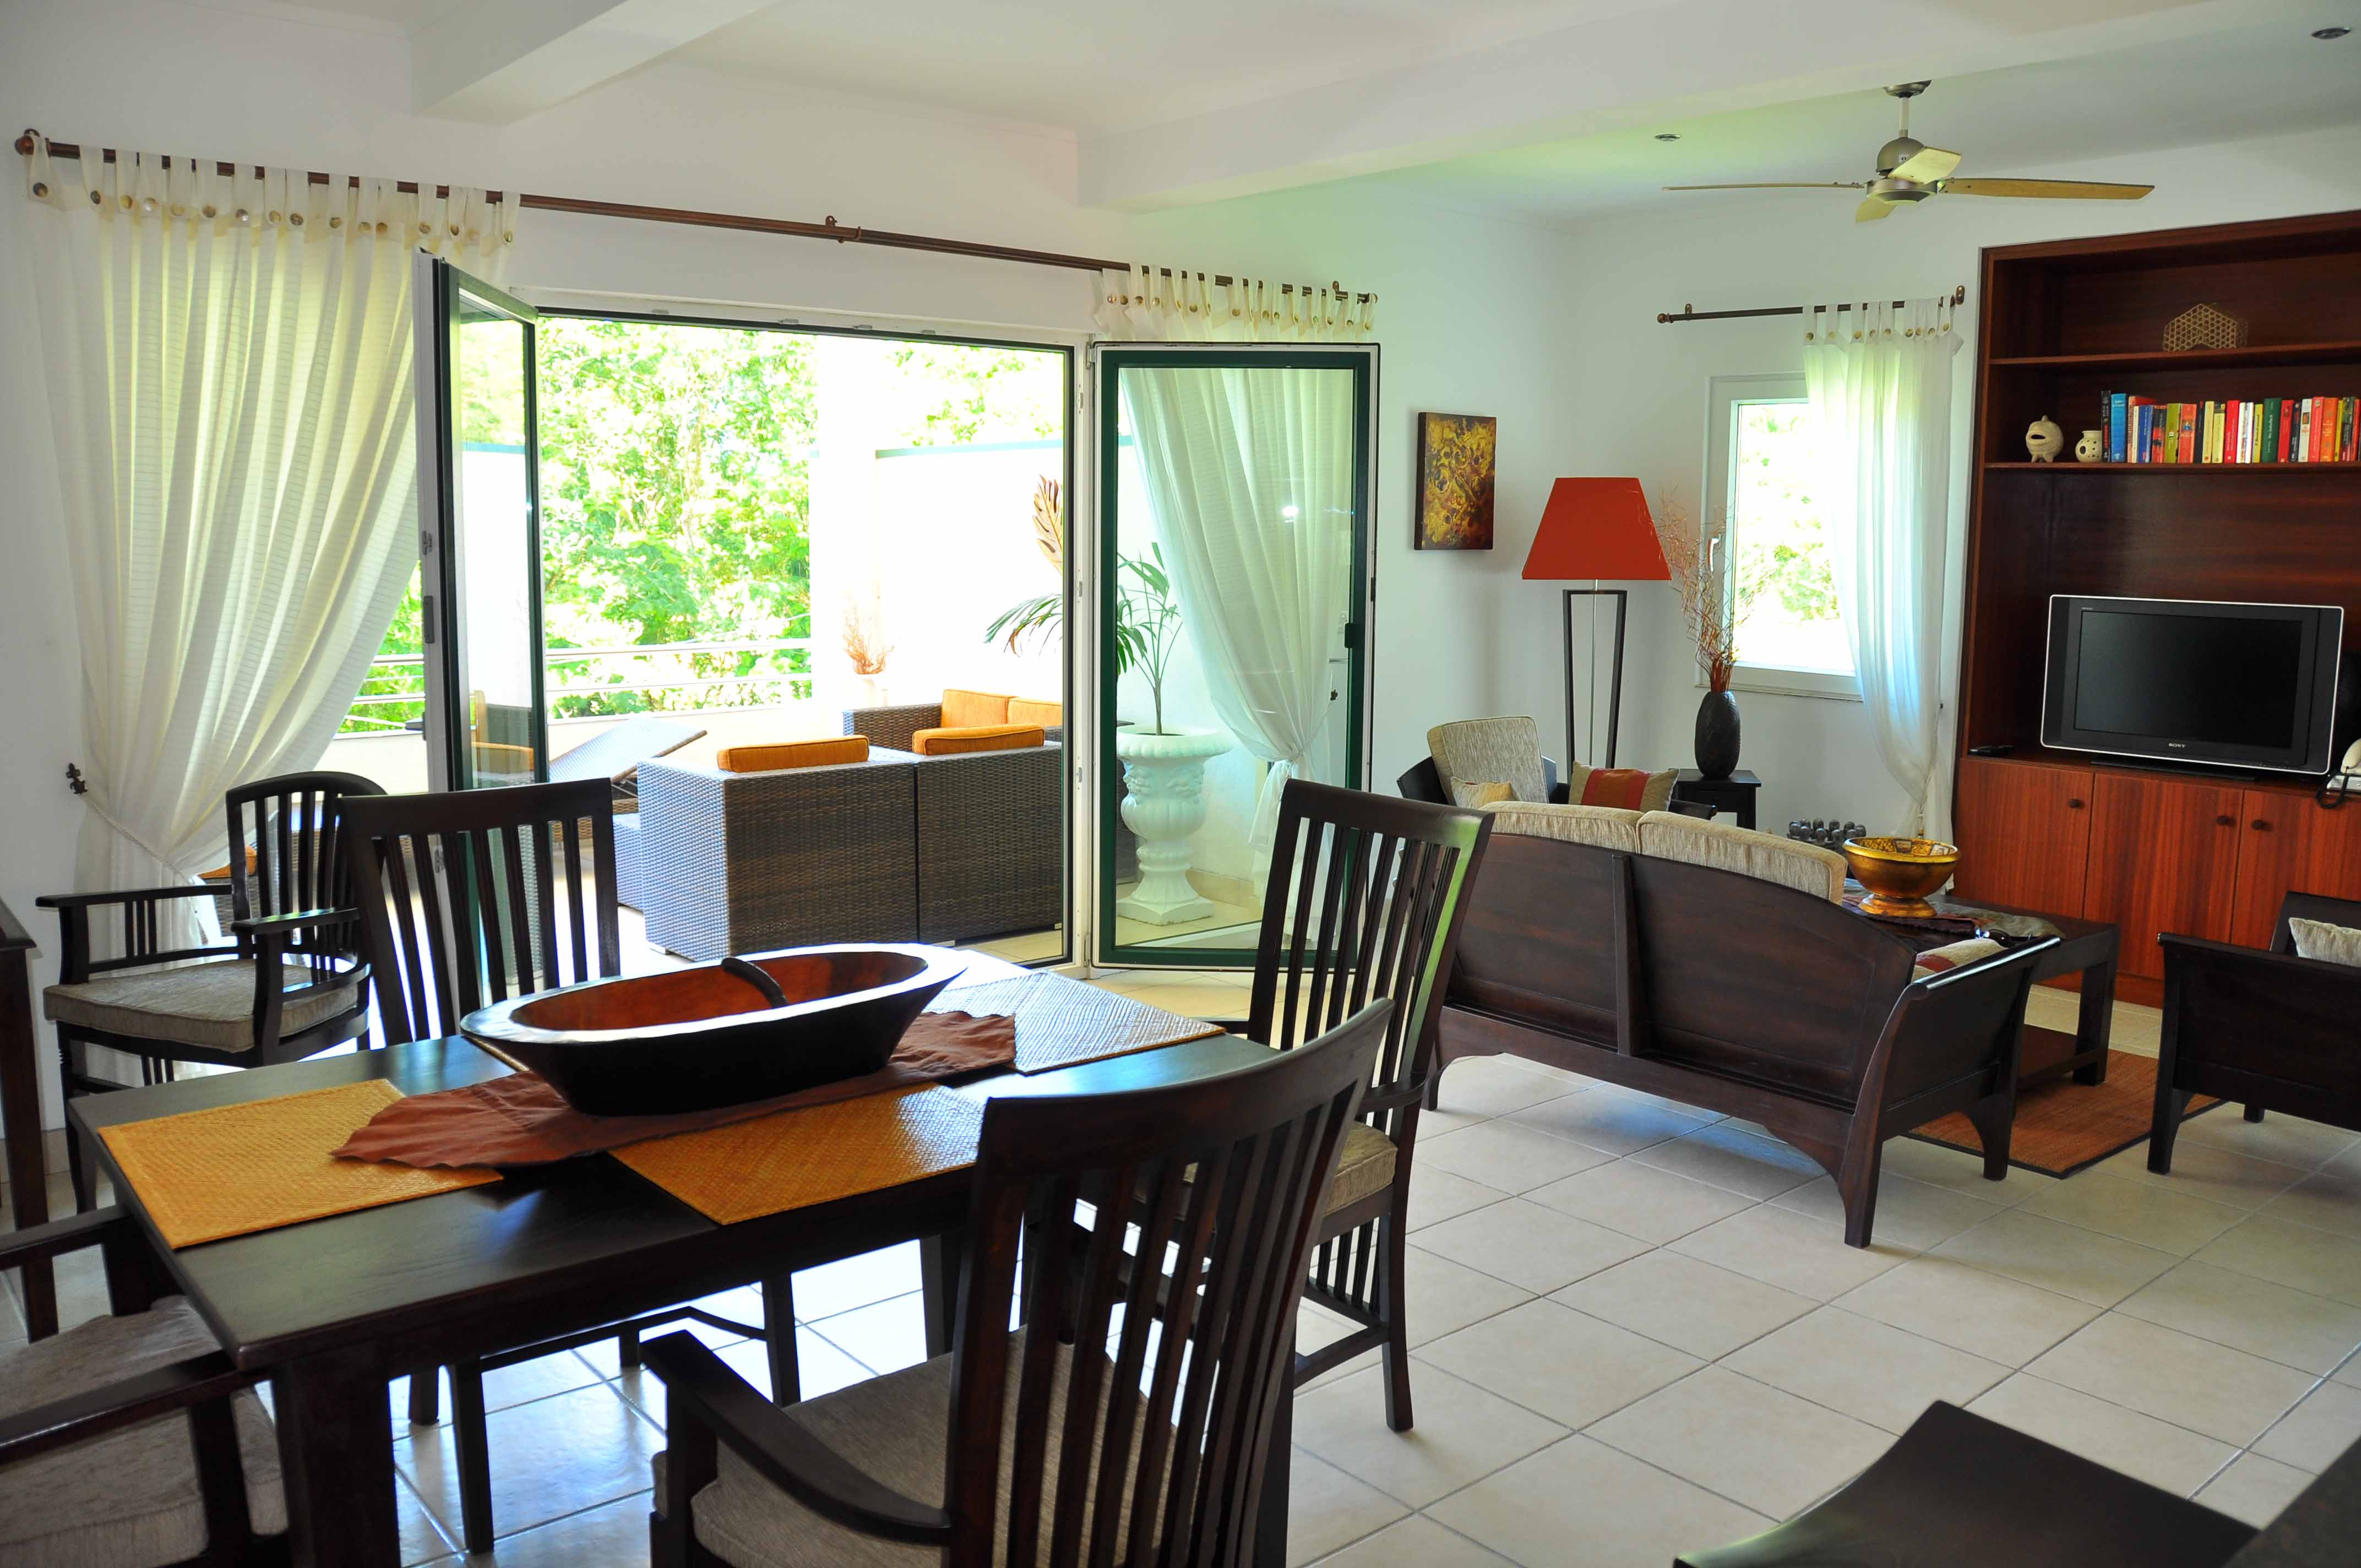 All apartments of the Hanneman Residence in Seychelles are self-catering. They feature open-plan kitchen fully equiped with he most modern and brand new machinary. You will enjoy preparing the delicious fish and discover vegetable and tropical fruits bought at the lively market of Victoria, 5 km away.